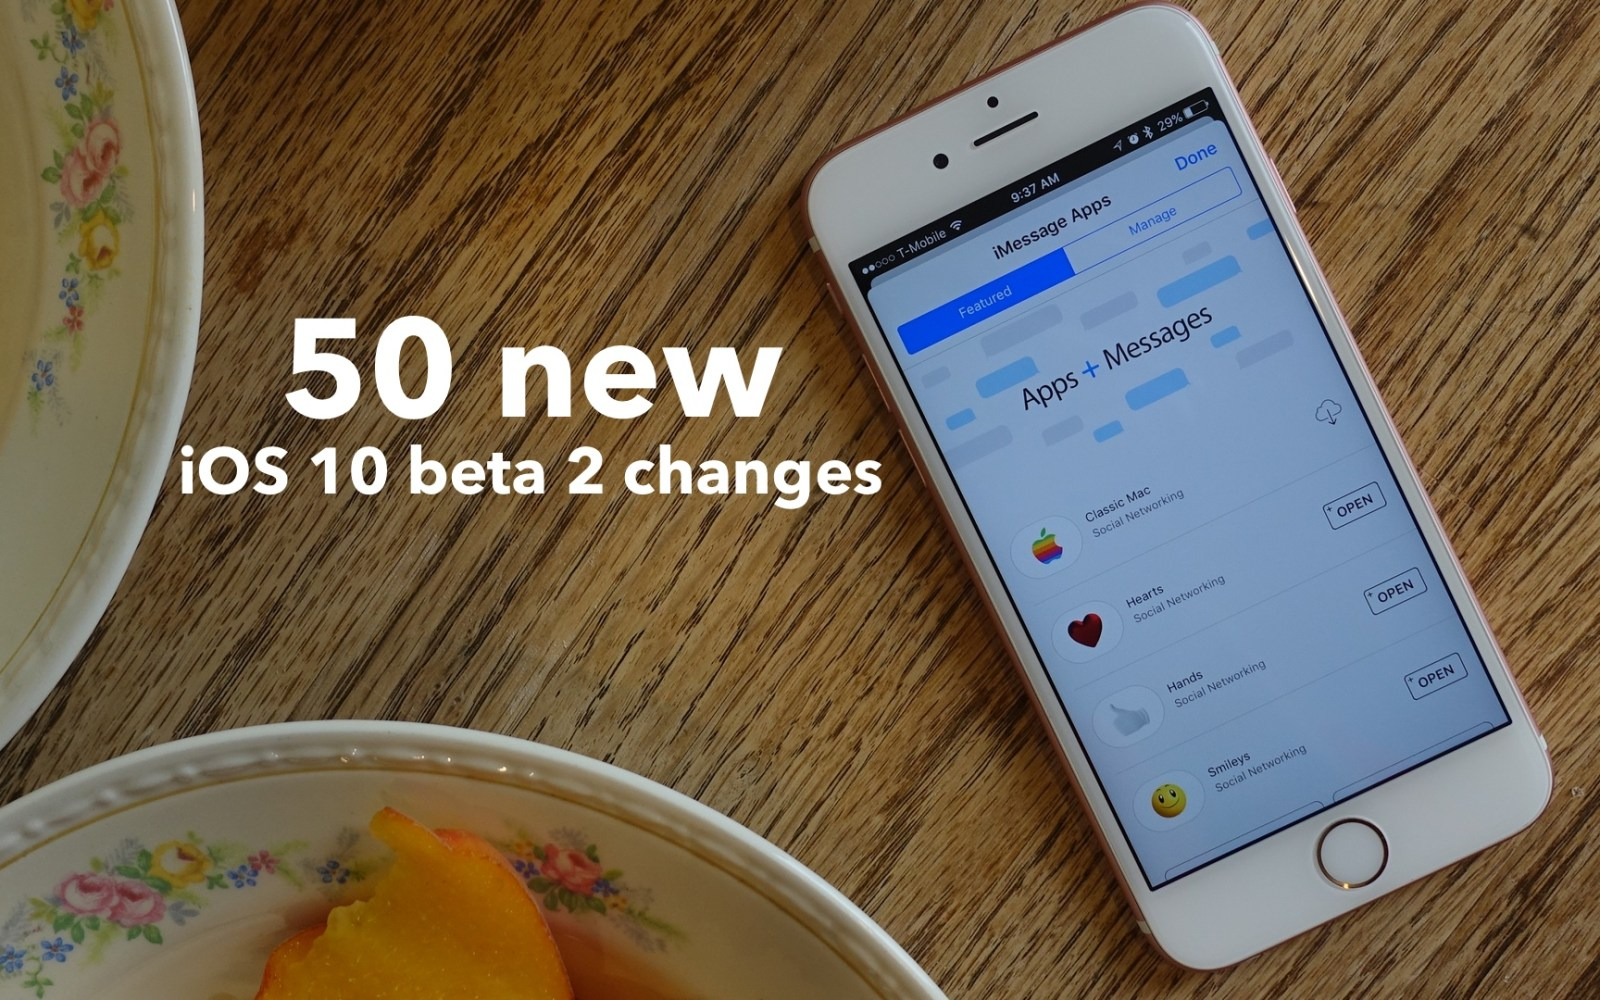 50 new iOS 10 beta 2 features [Video]